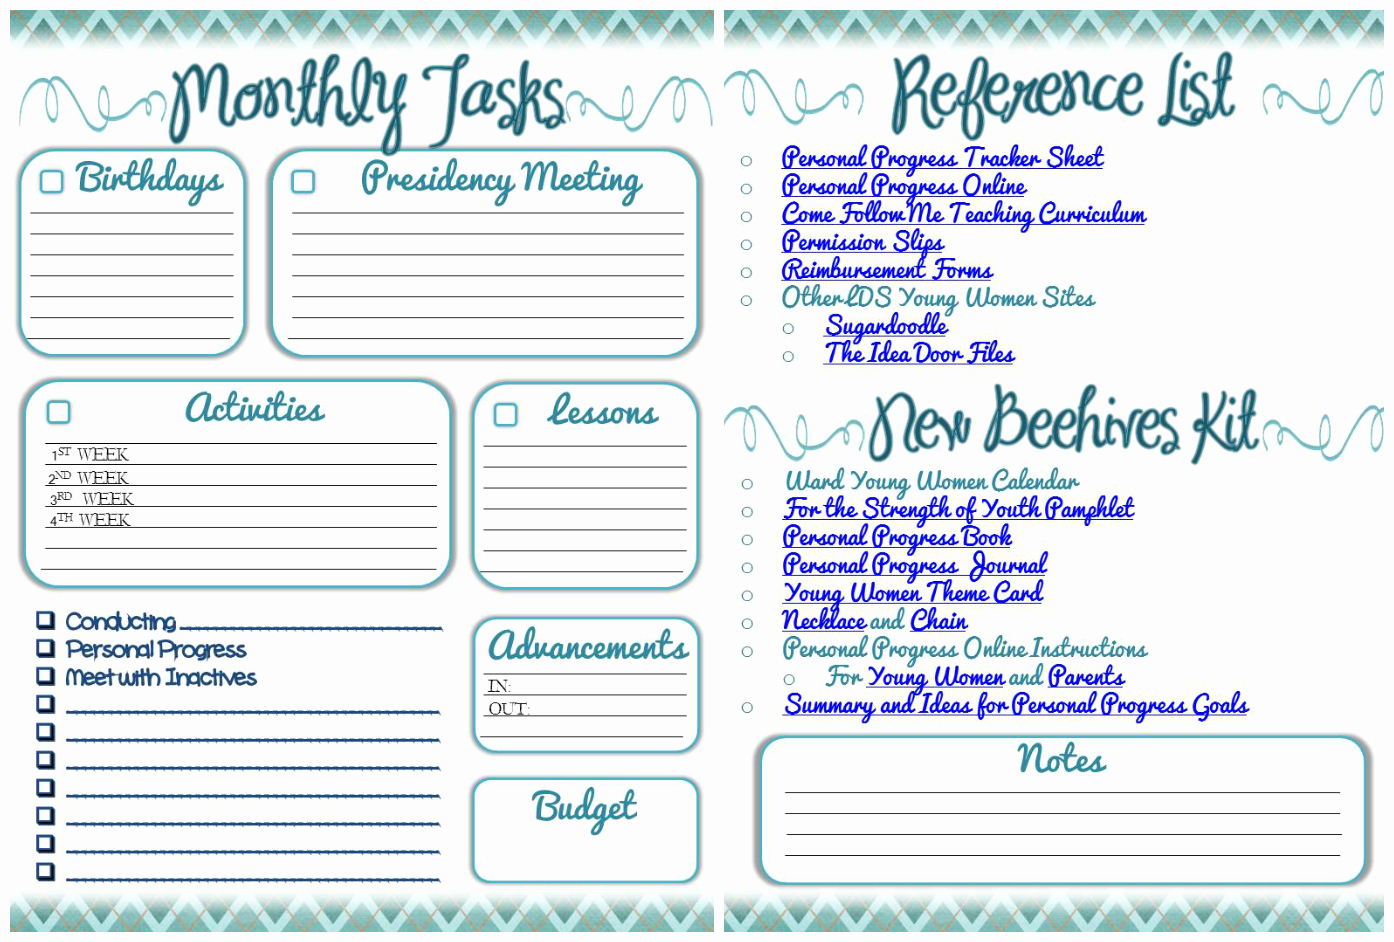 Permission Slips Lds Lovely Digital Scrapbooking Made Easy 2014 Yw Presidency Planner